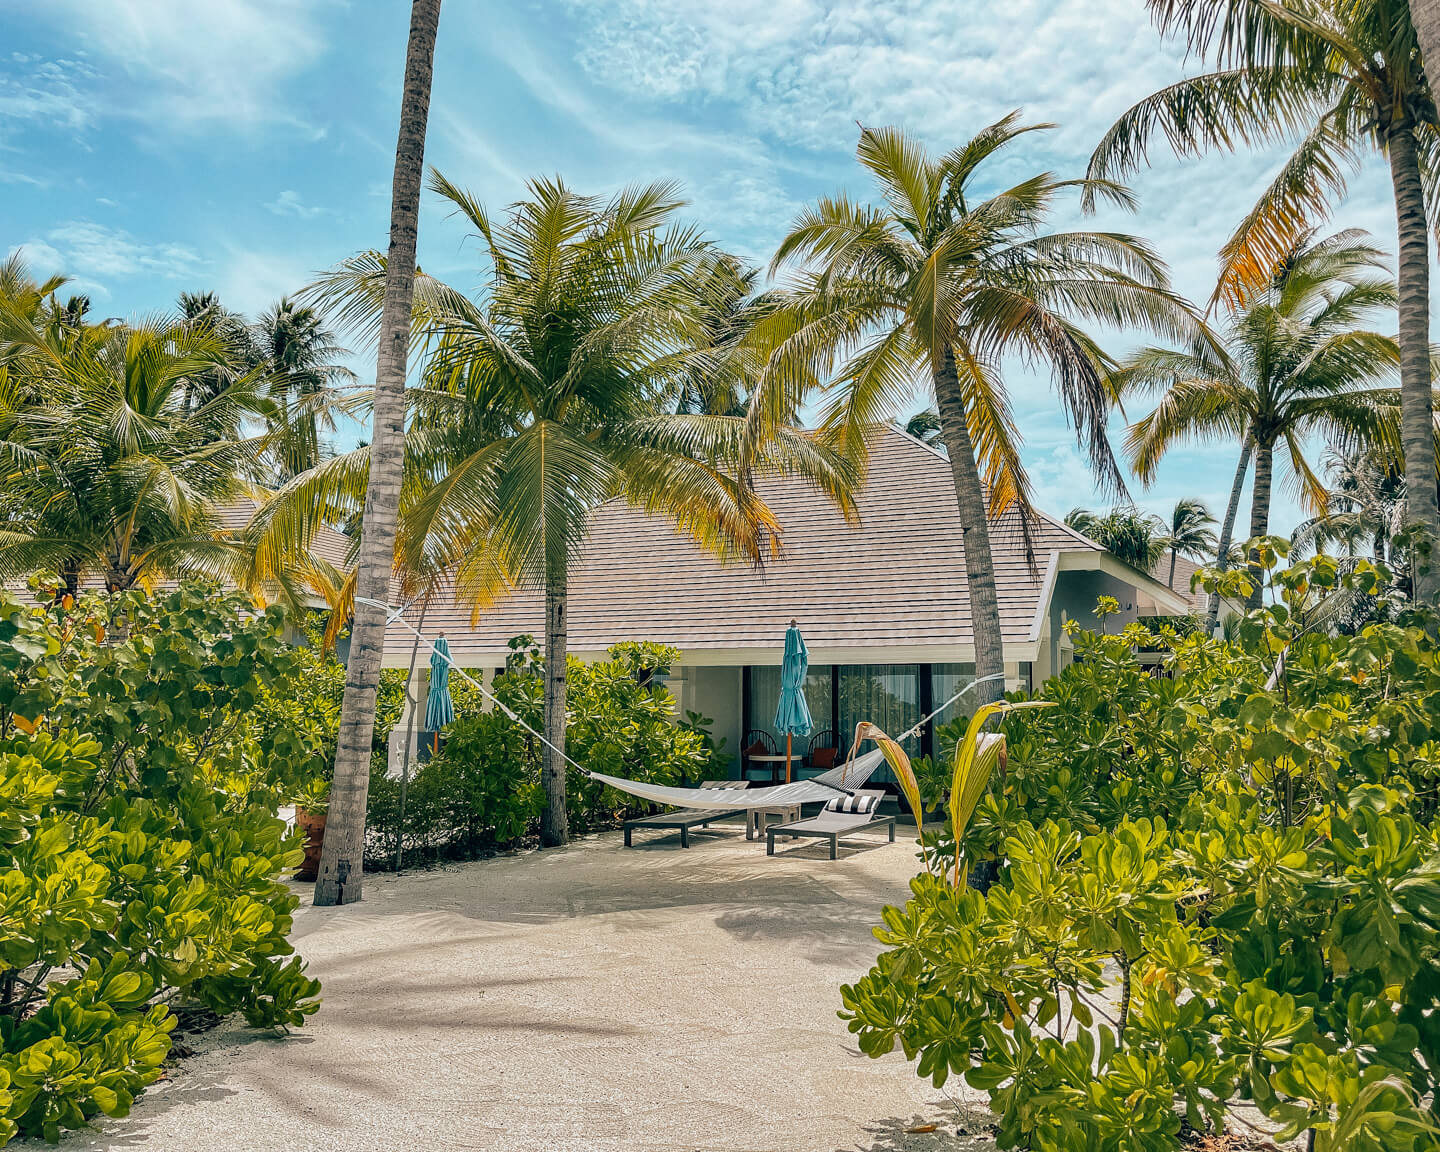 Beach Villa of the SAii Lagoon Maldives Hotel surrounded by palm trees with a hammock